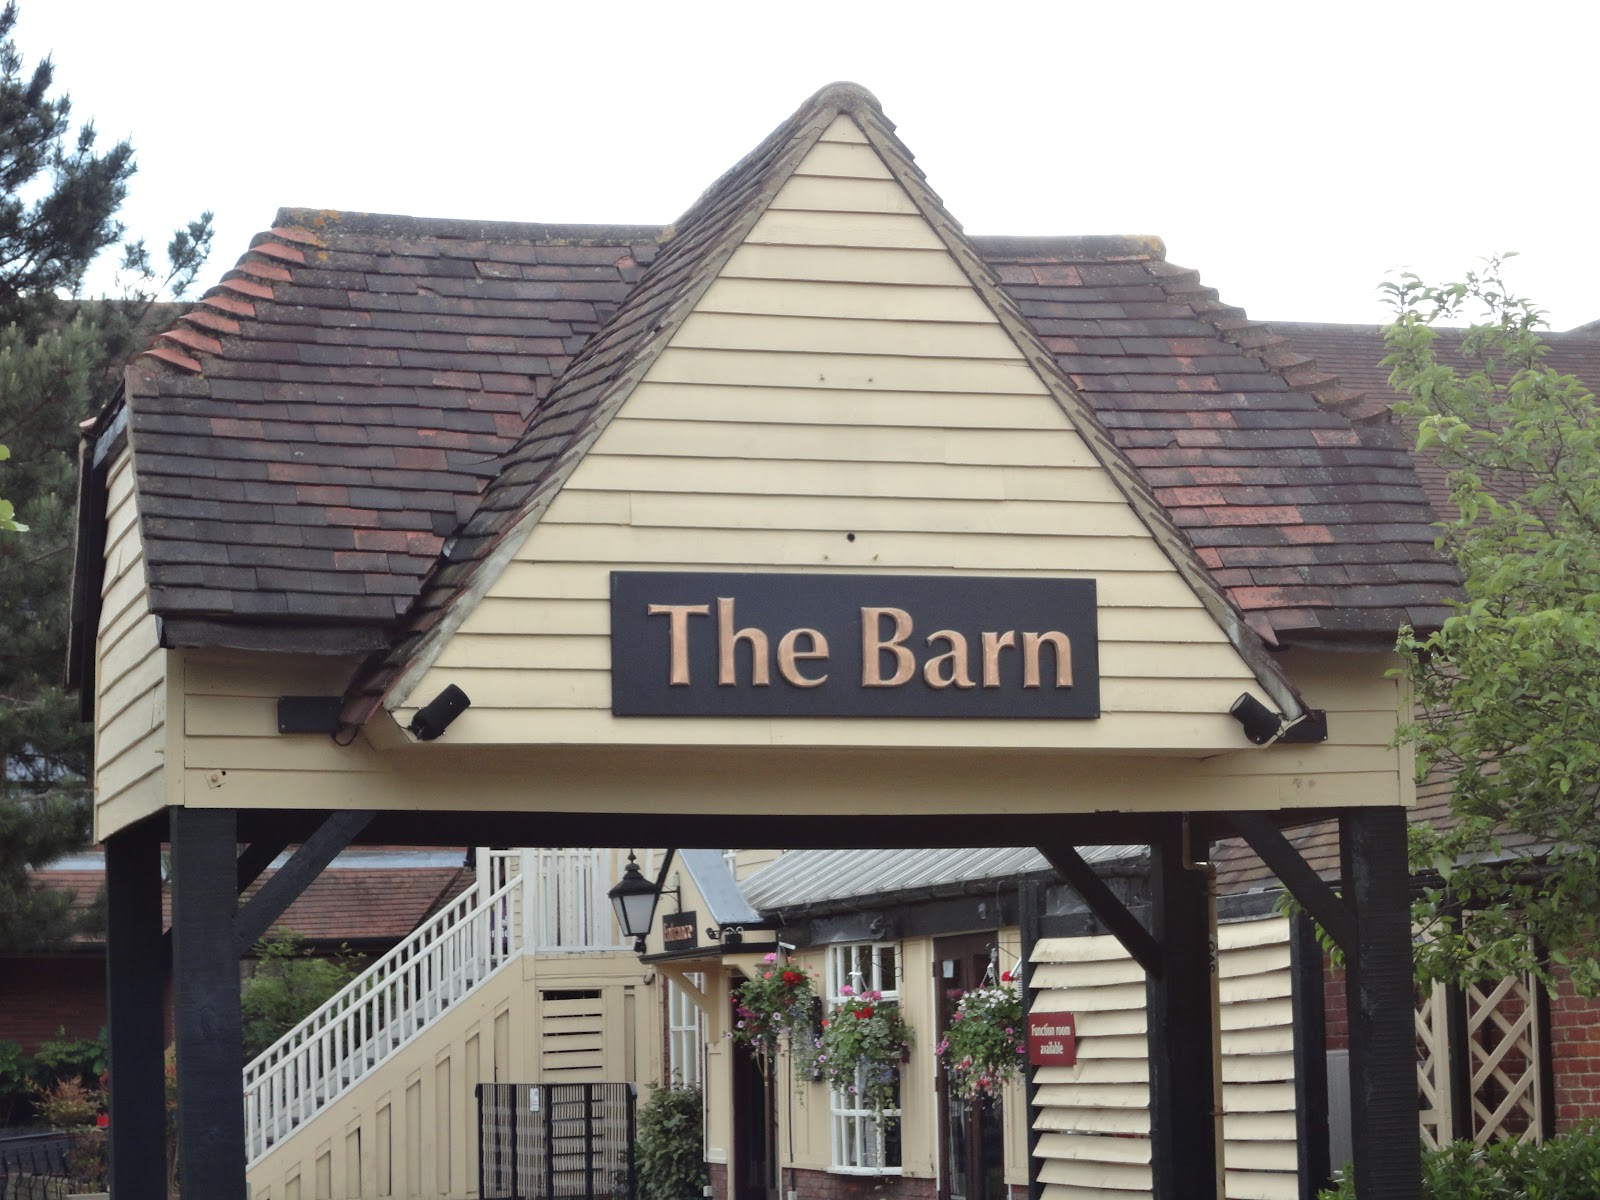 The Barn Beefeater Milton Keynes